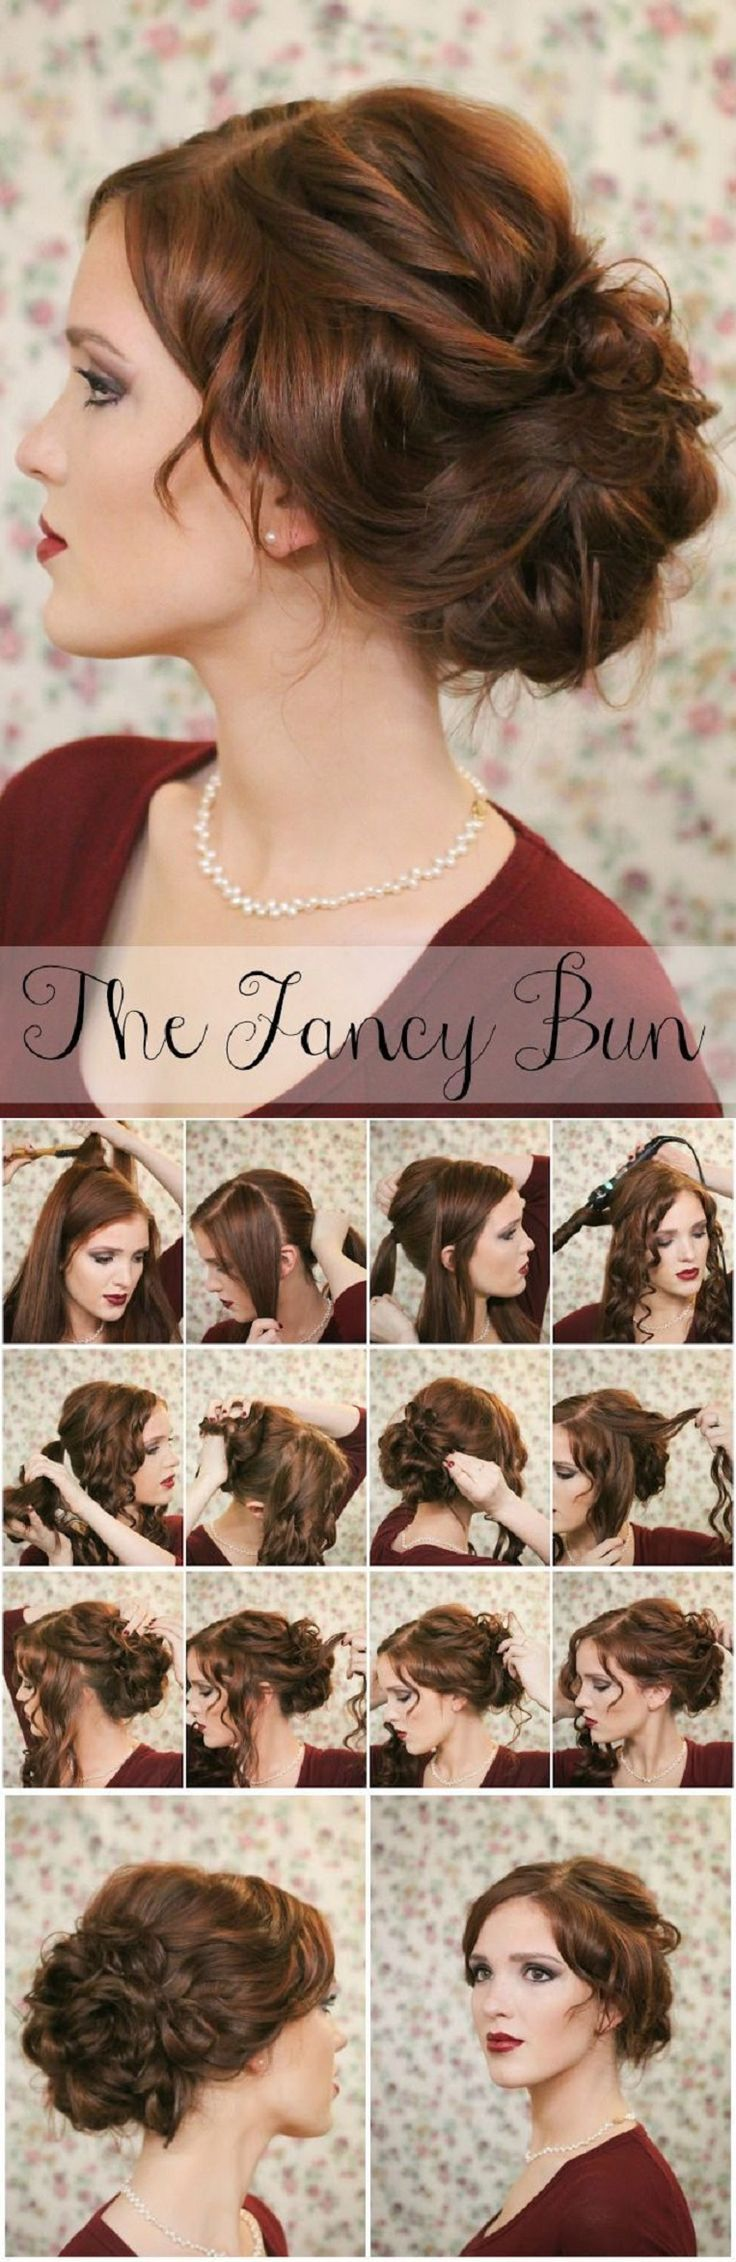 Hair tutorials knot updo hairstyles fancy hair style and updo